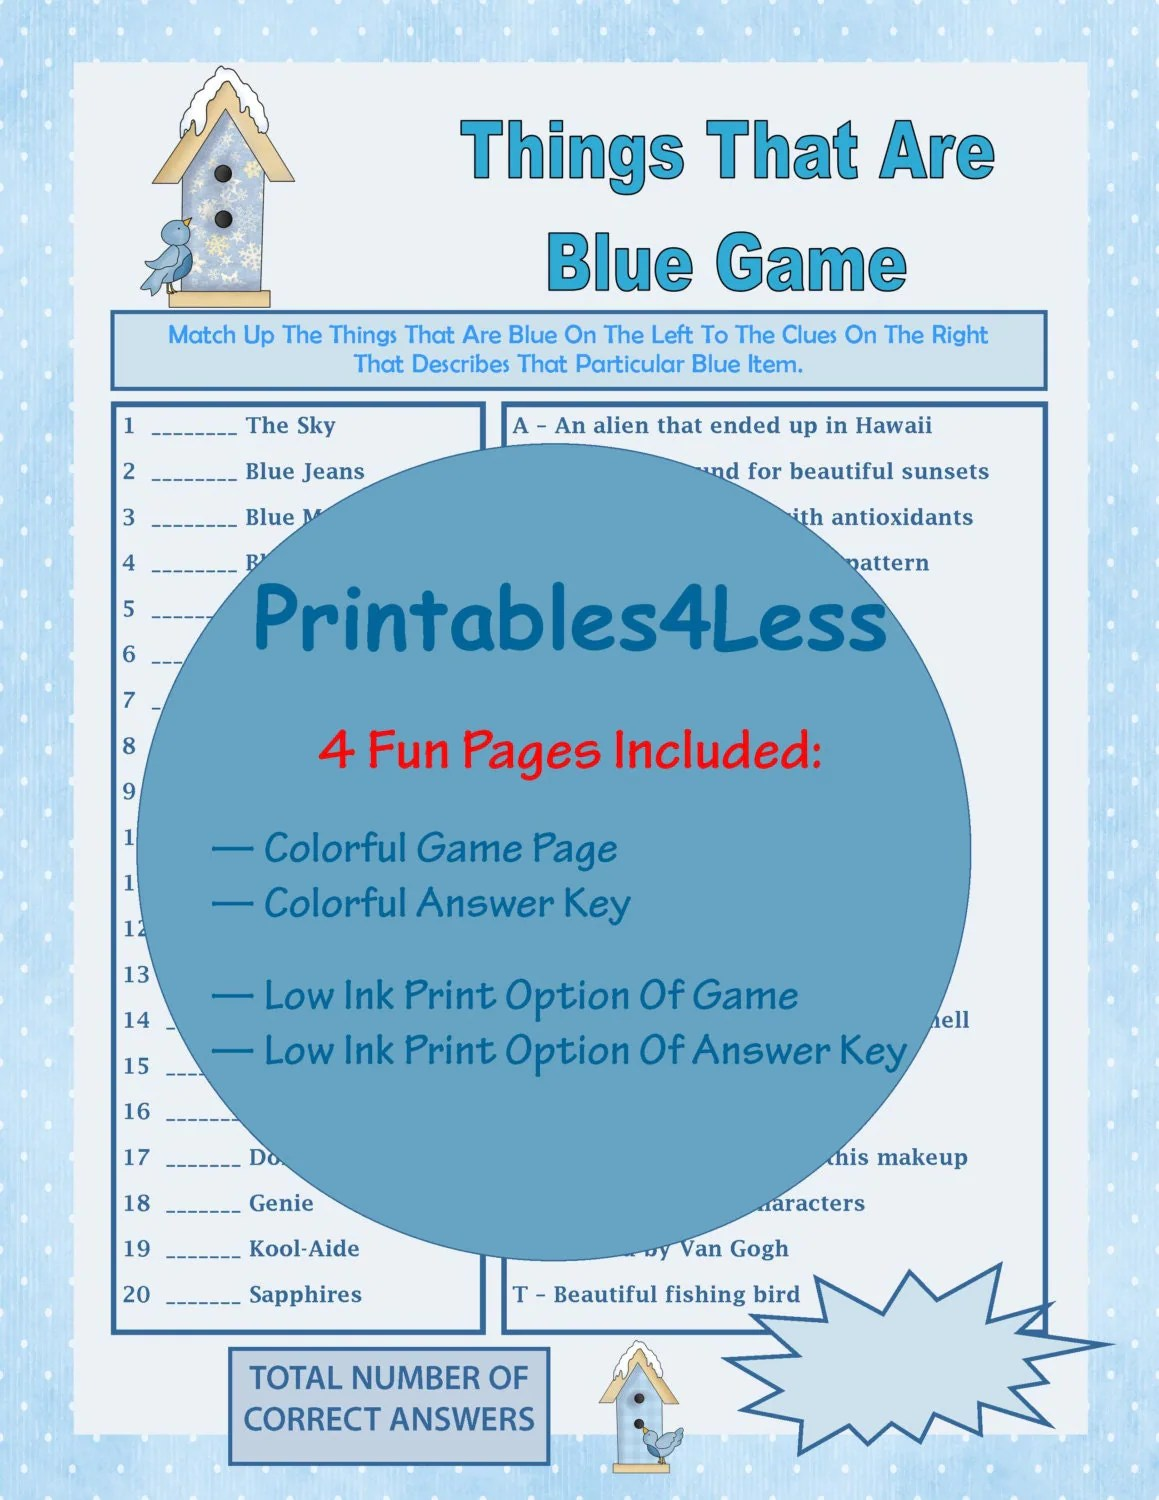 Things That Are Blue Game Fun Party Game Ideas Fun Printable